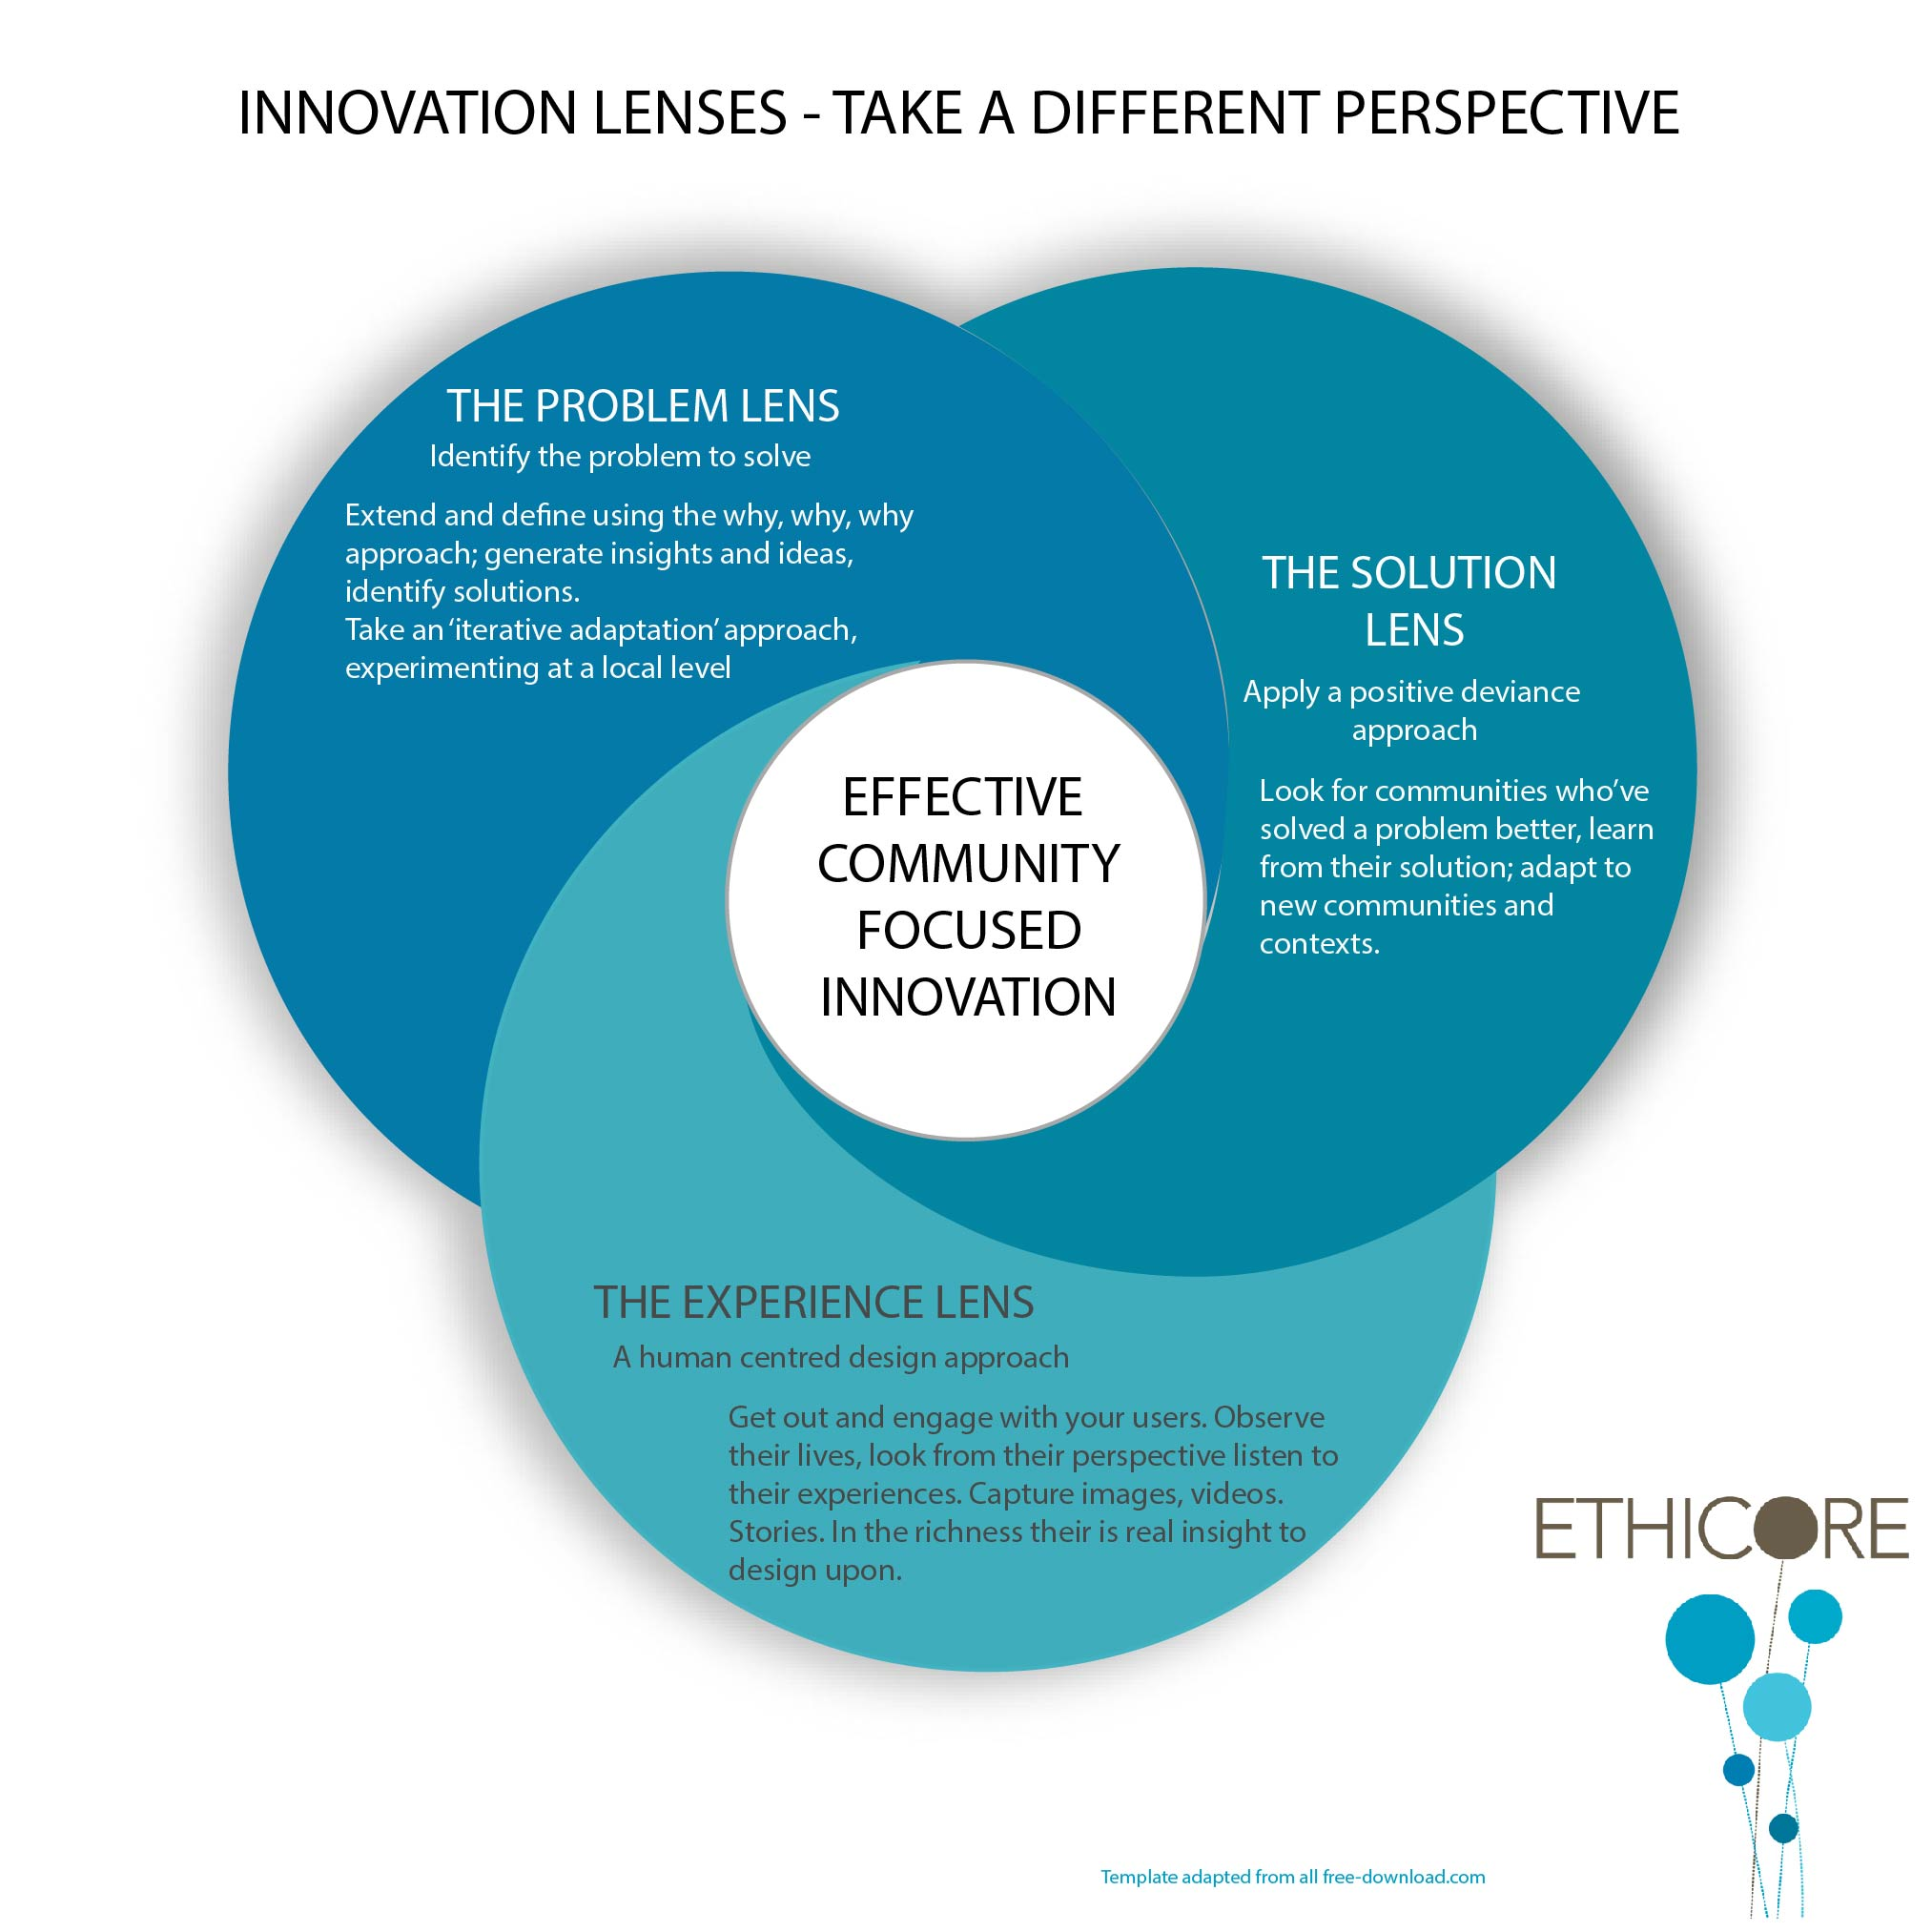 Innovation Lenses